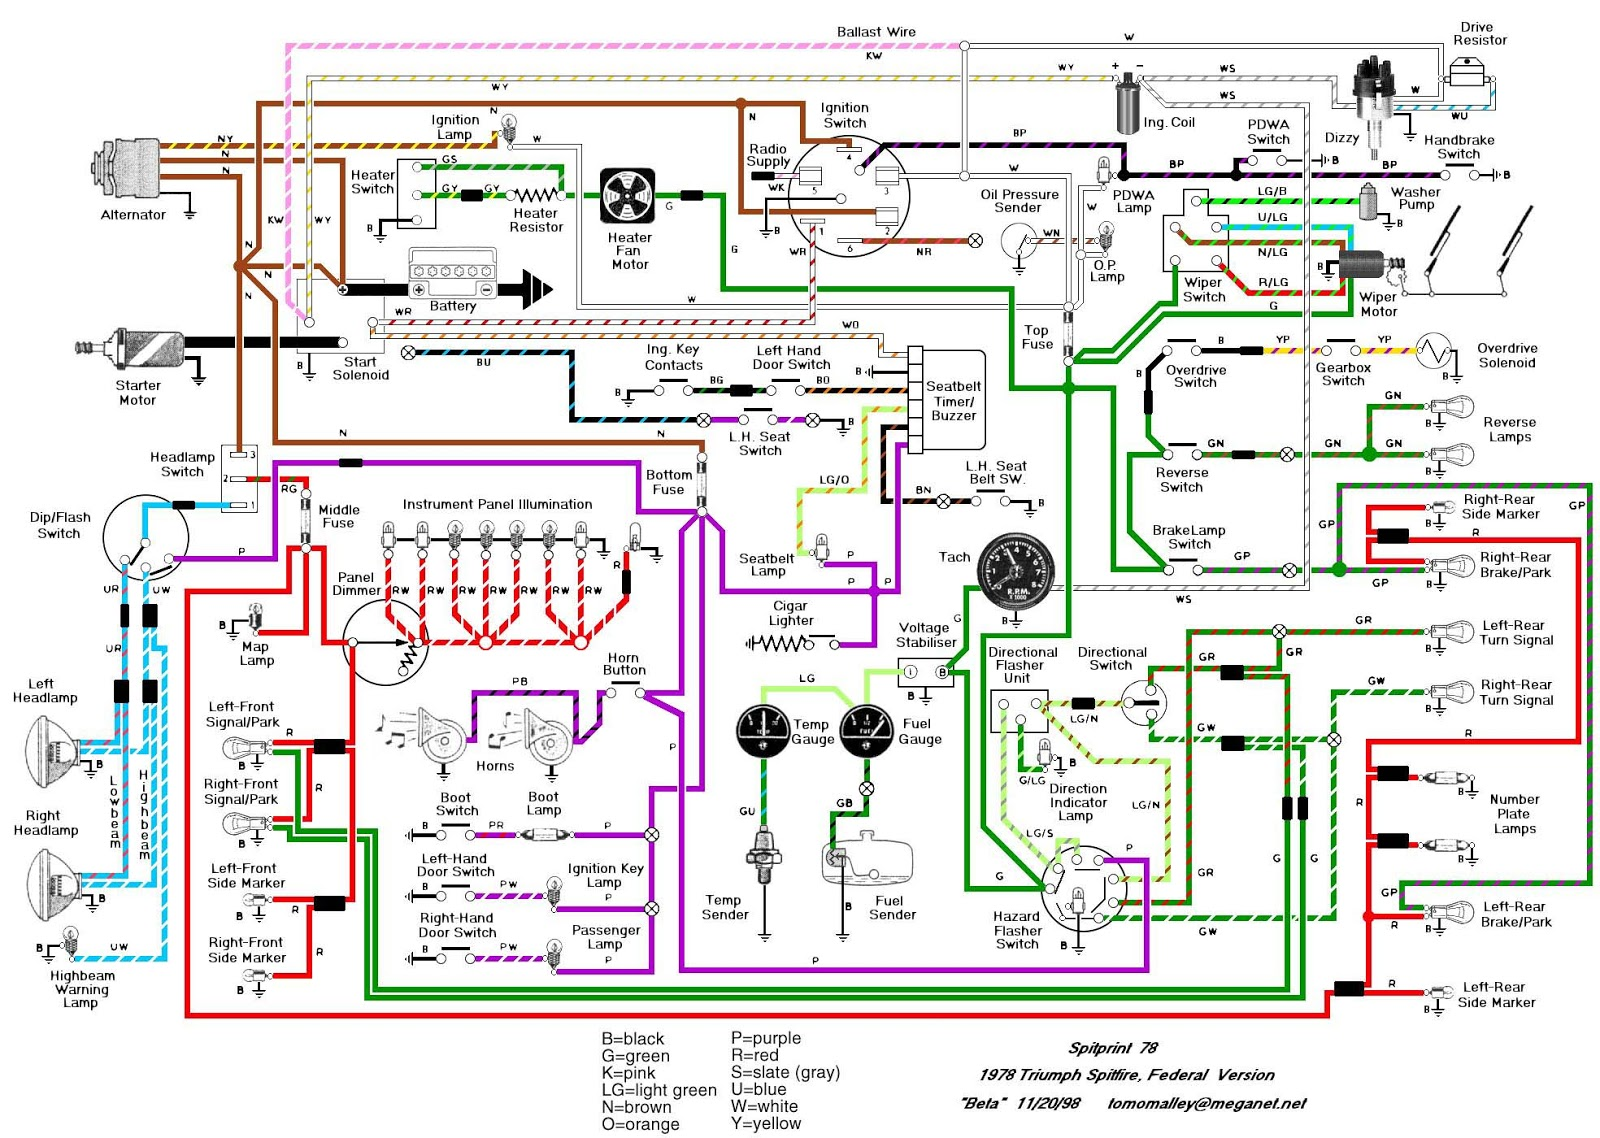 Case List Diagram Electrical Wiring Glock 23 Were Is My Diagnostics Port September 2016 Sks Schematics And Parts